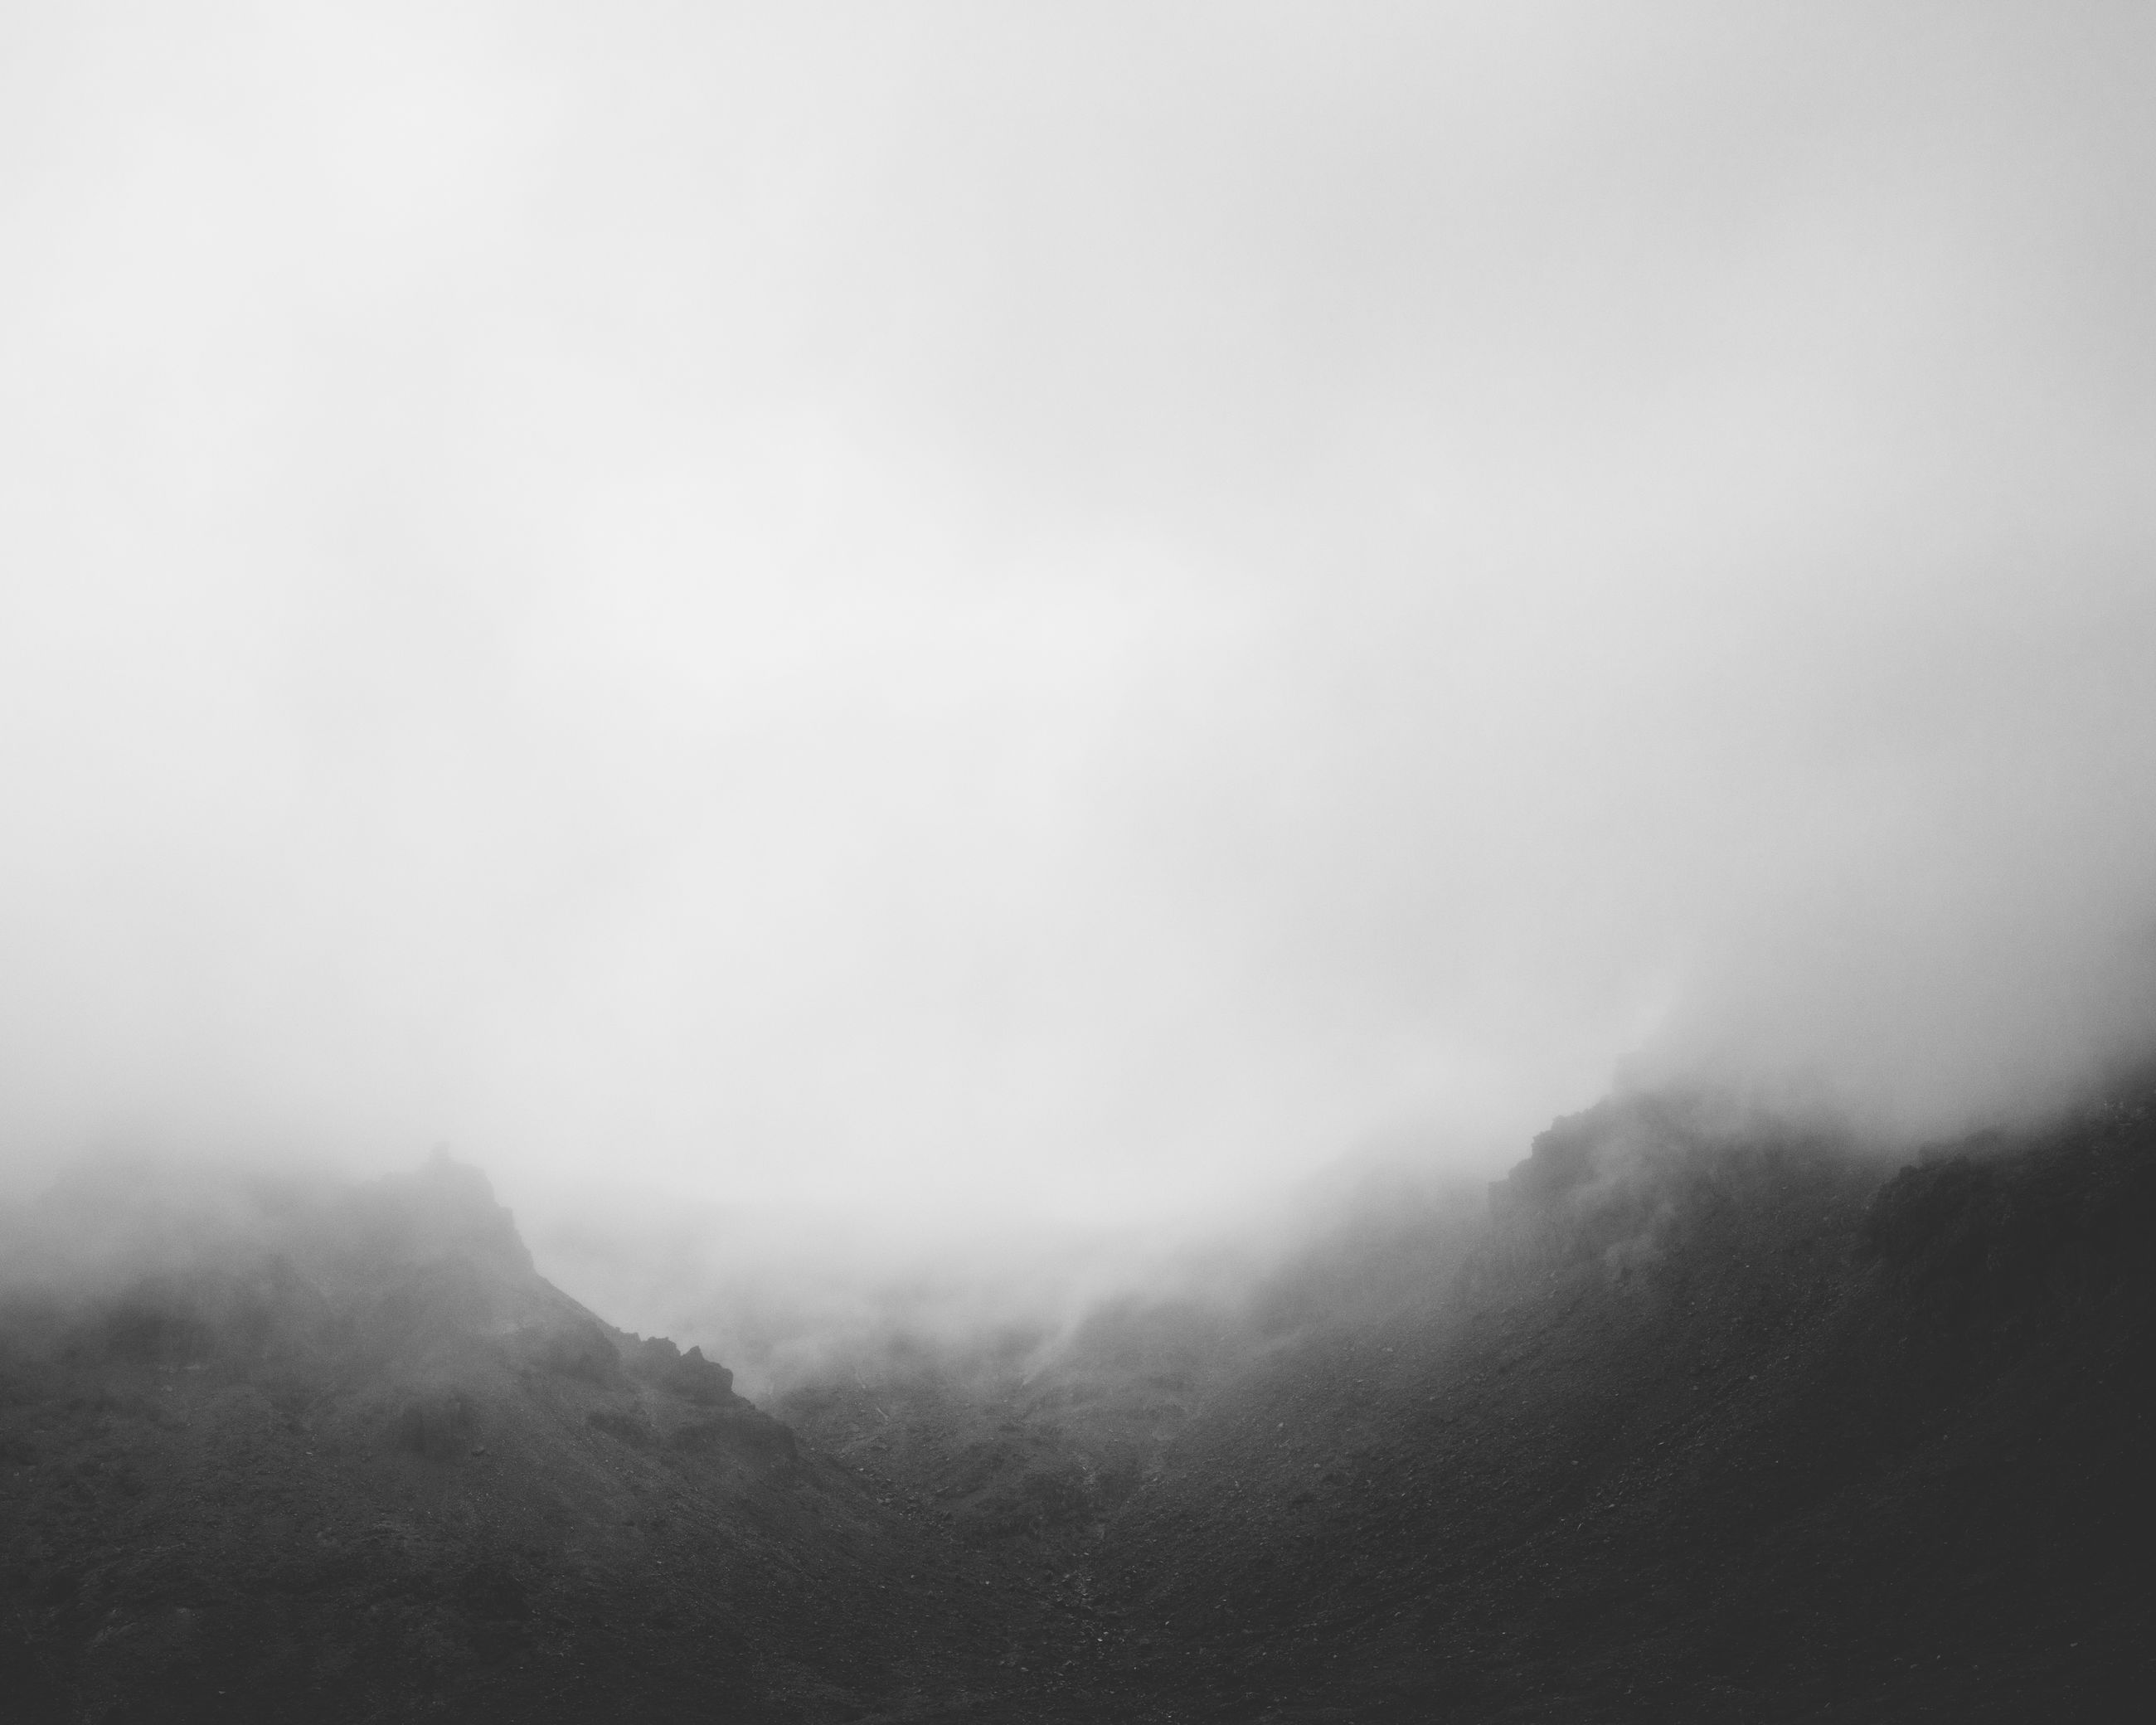 fog, foggy, tranquility, tranquil scene, scenics, weather, beauty in nature, nature, copy space, sky, mountain, idyllic, landscape, overcast, non-urban scene, mist, remote, outdoors, day, no people